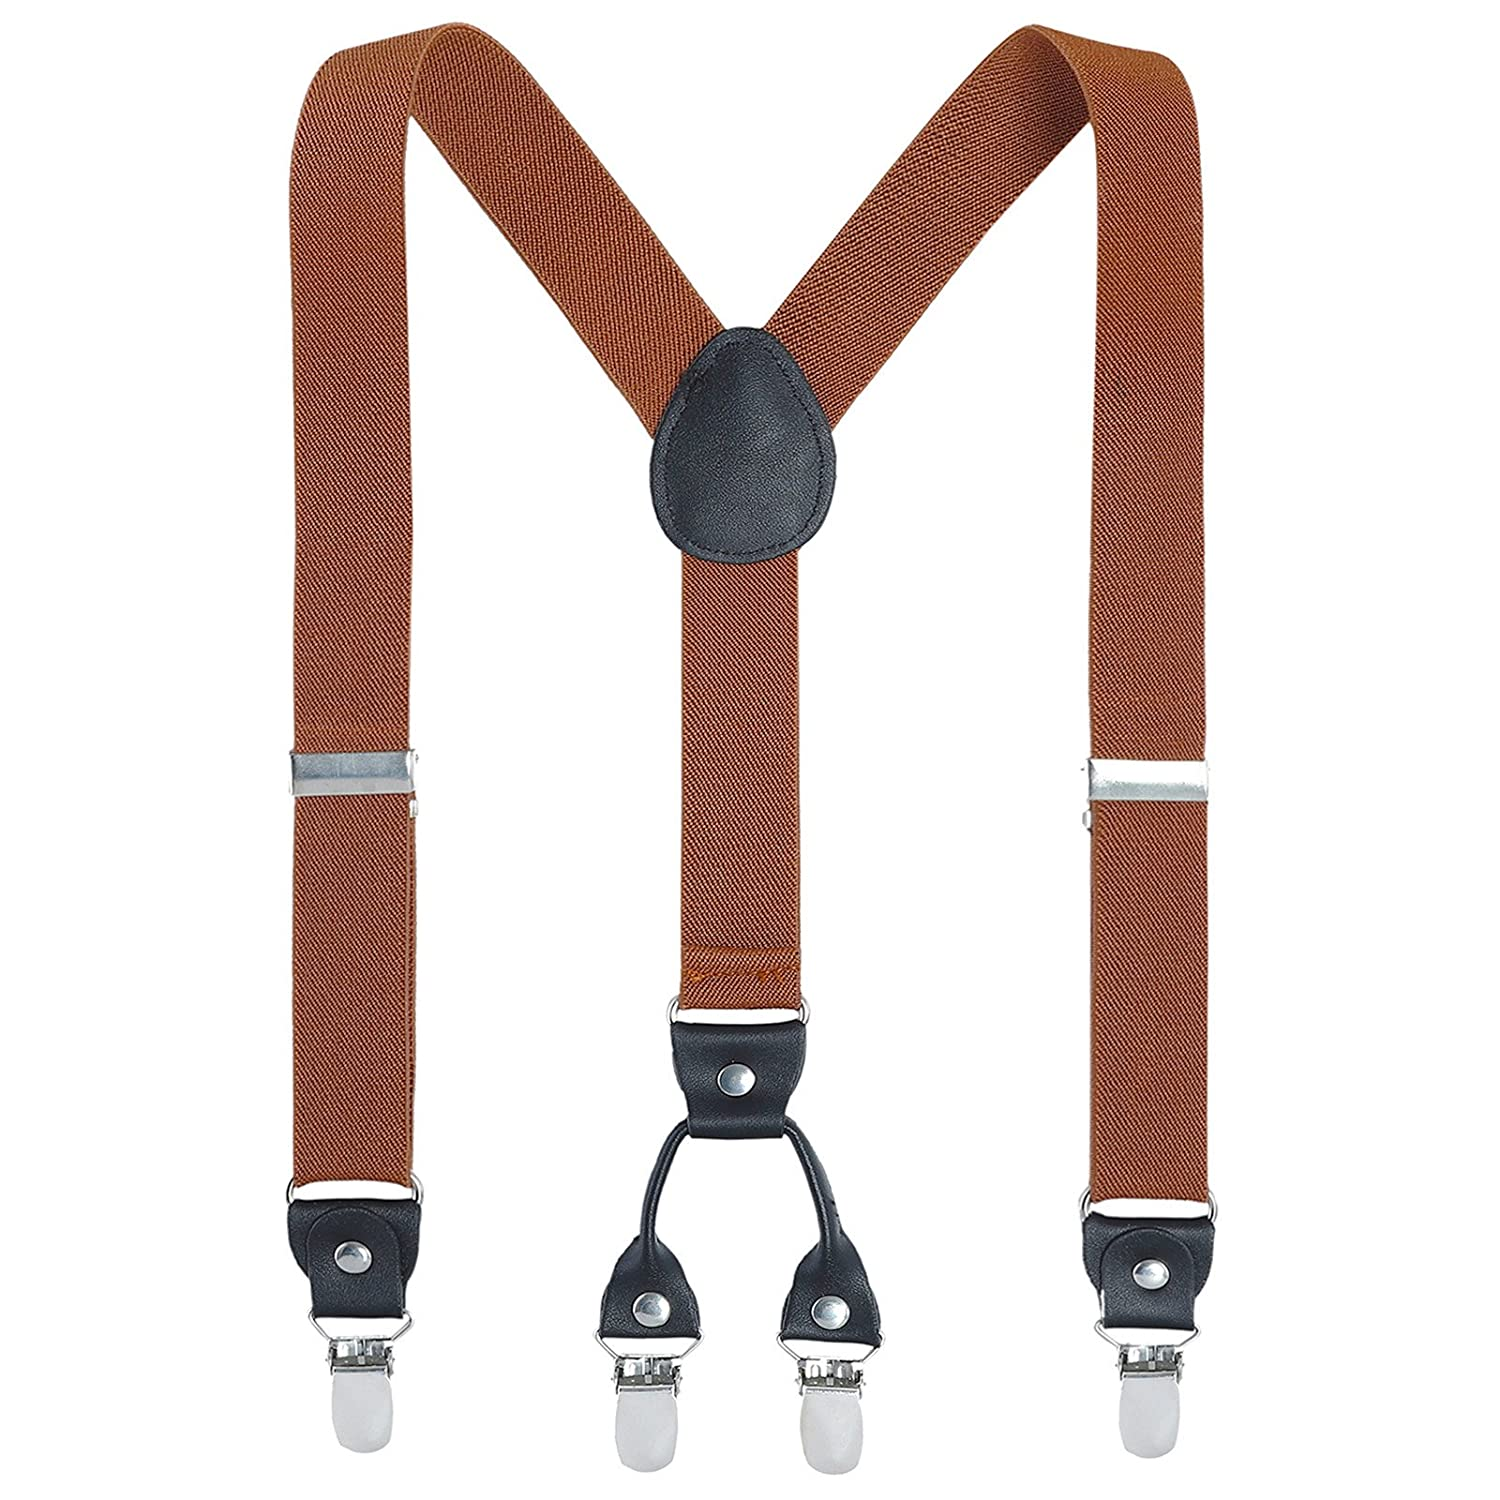 Boys Men Adult Kids Suspenders - Adjustable Elastic Solid Color Genuine Leather 1 Inch Wide